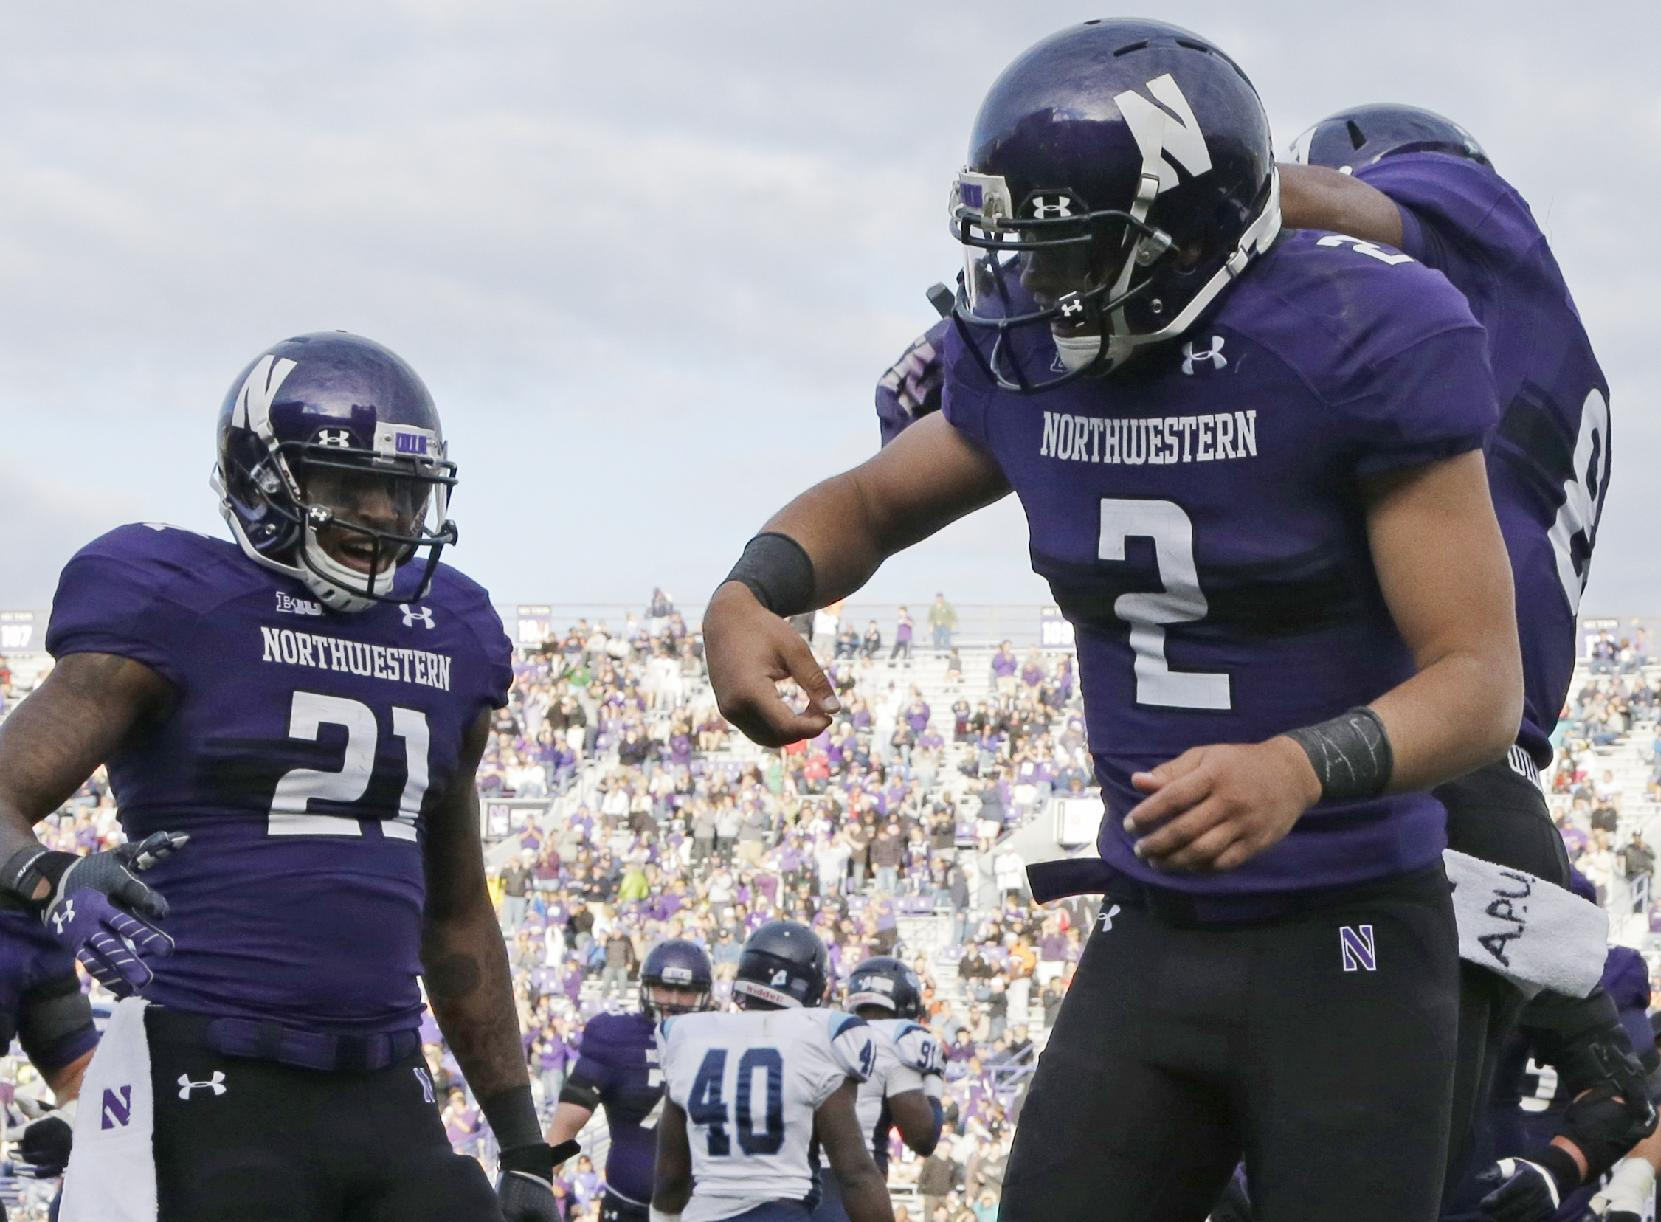 Kain Colter celebrates a TD during a Northwestern's win. (AP)